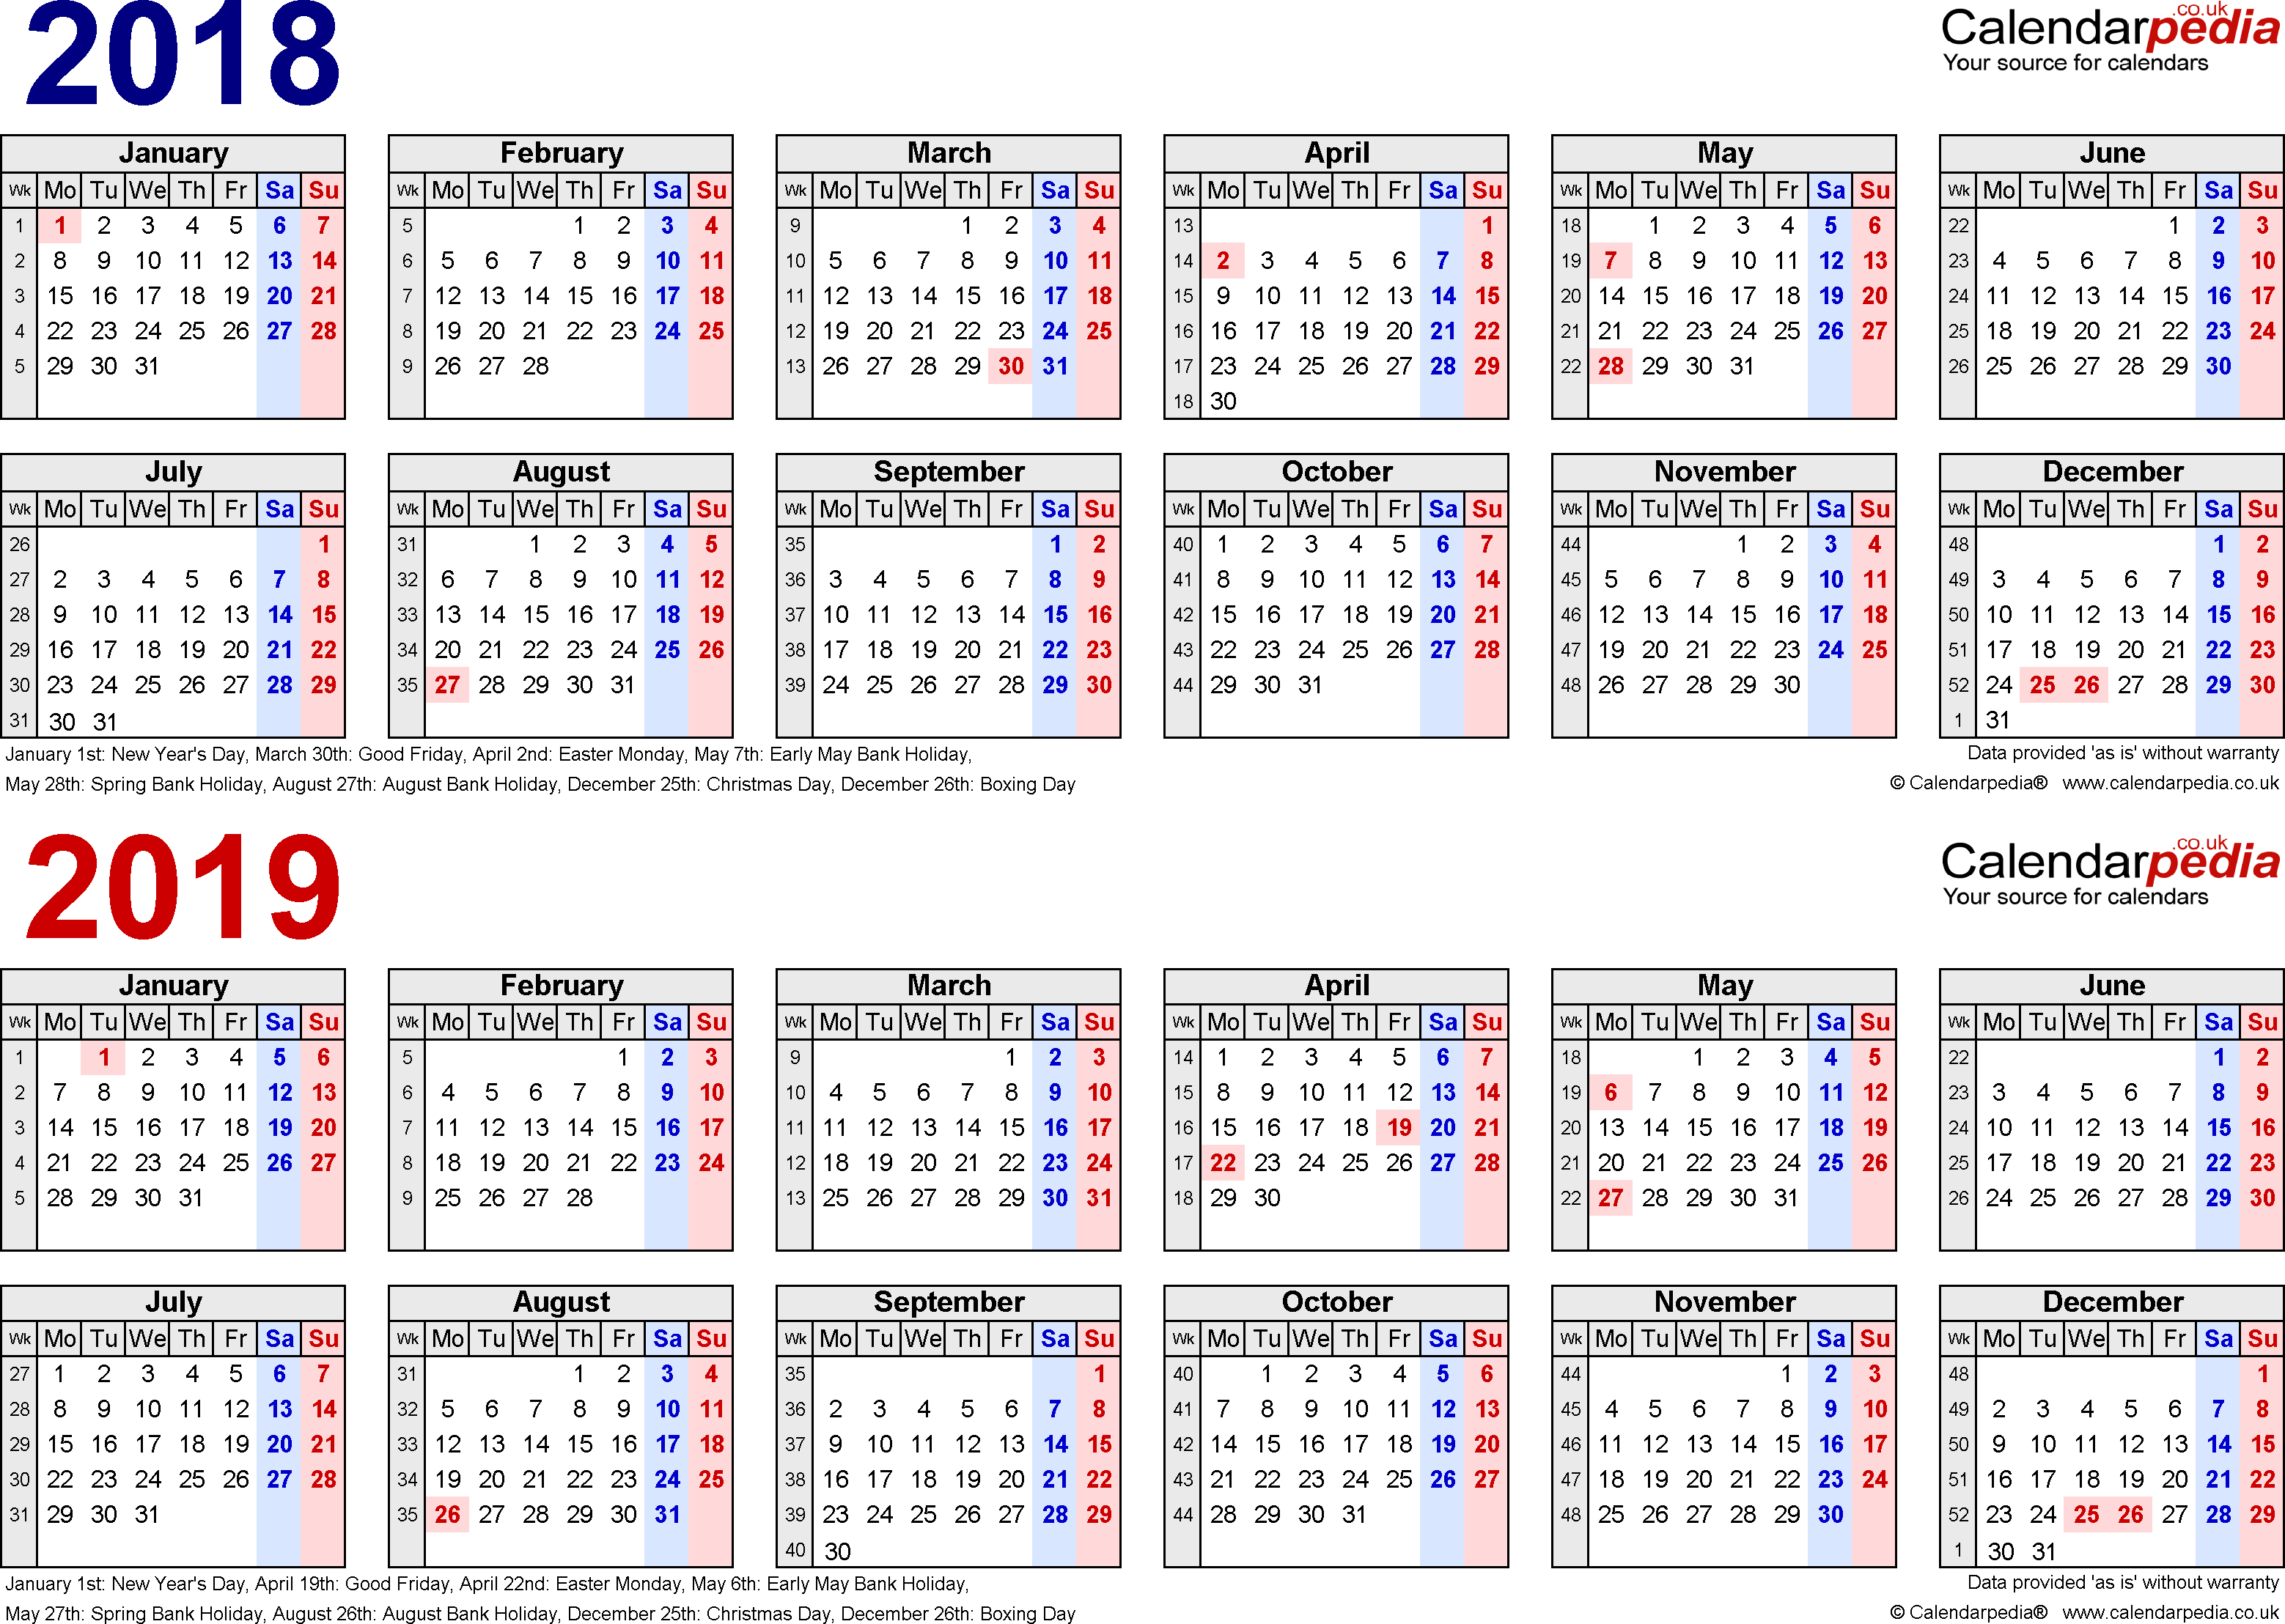 Download Template 1: Word template for two year calendar 2018/2019 in blue/red (landscape orientation, 1 page, A4)